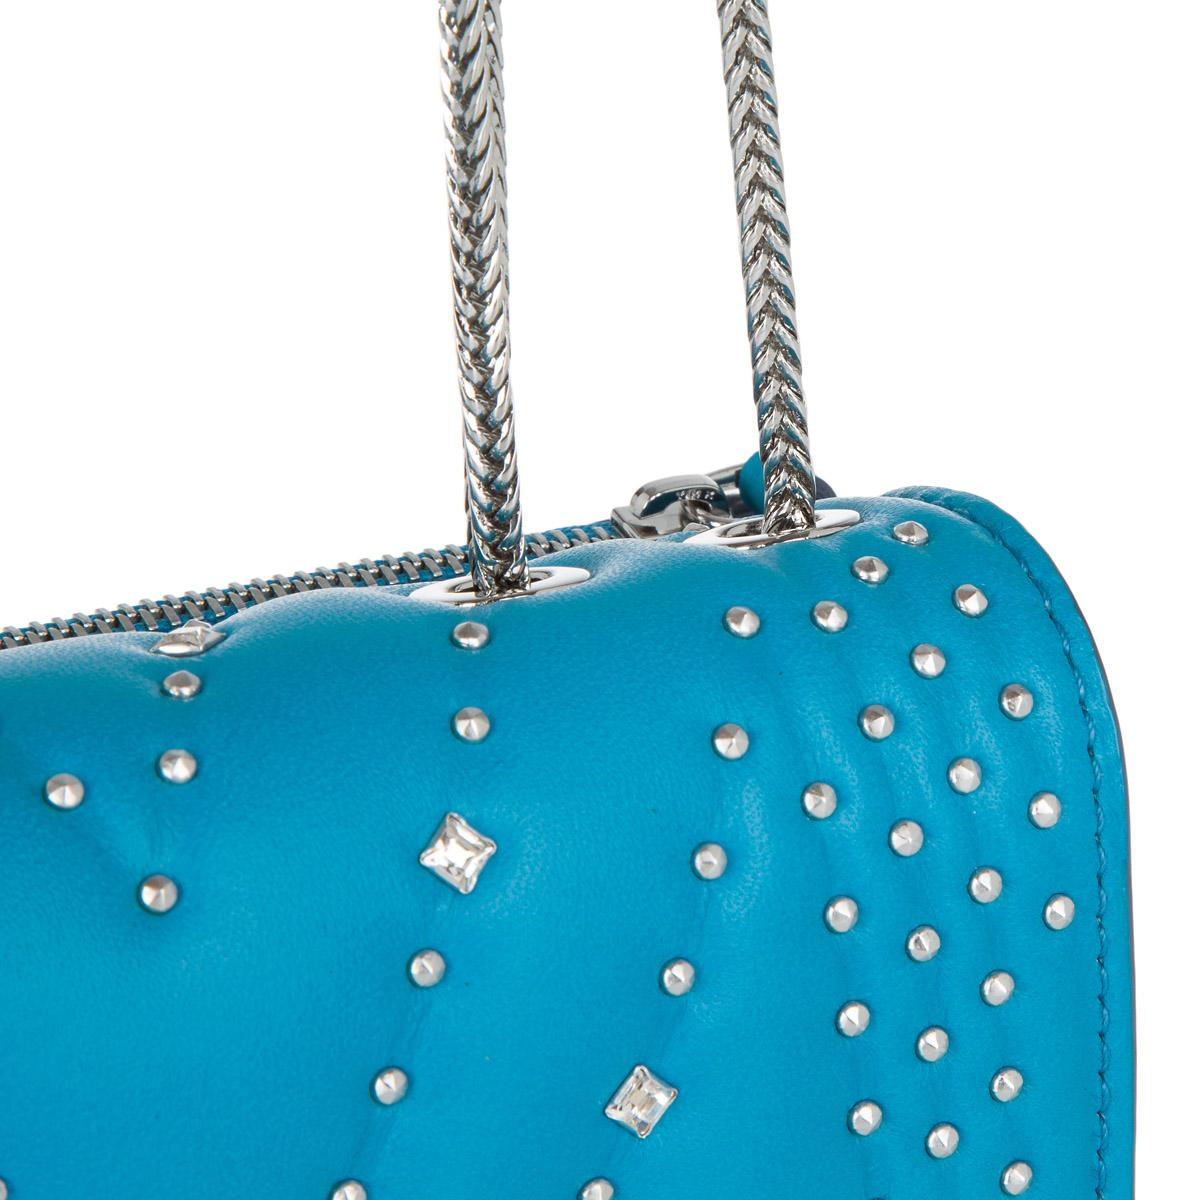 Mcm Diamond Disco Mini Crossbody Tile Blue in Blue - Lyst 7e9d9b0303a73